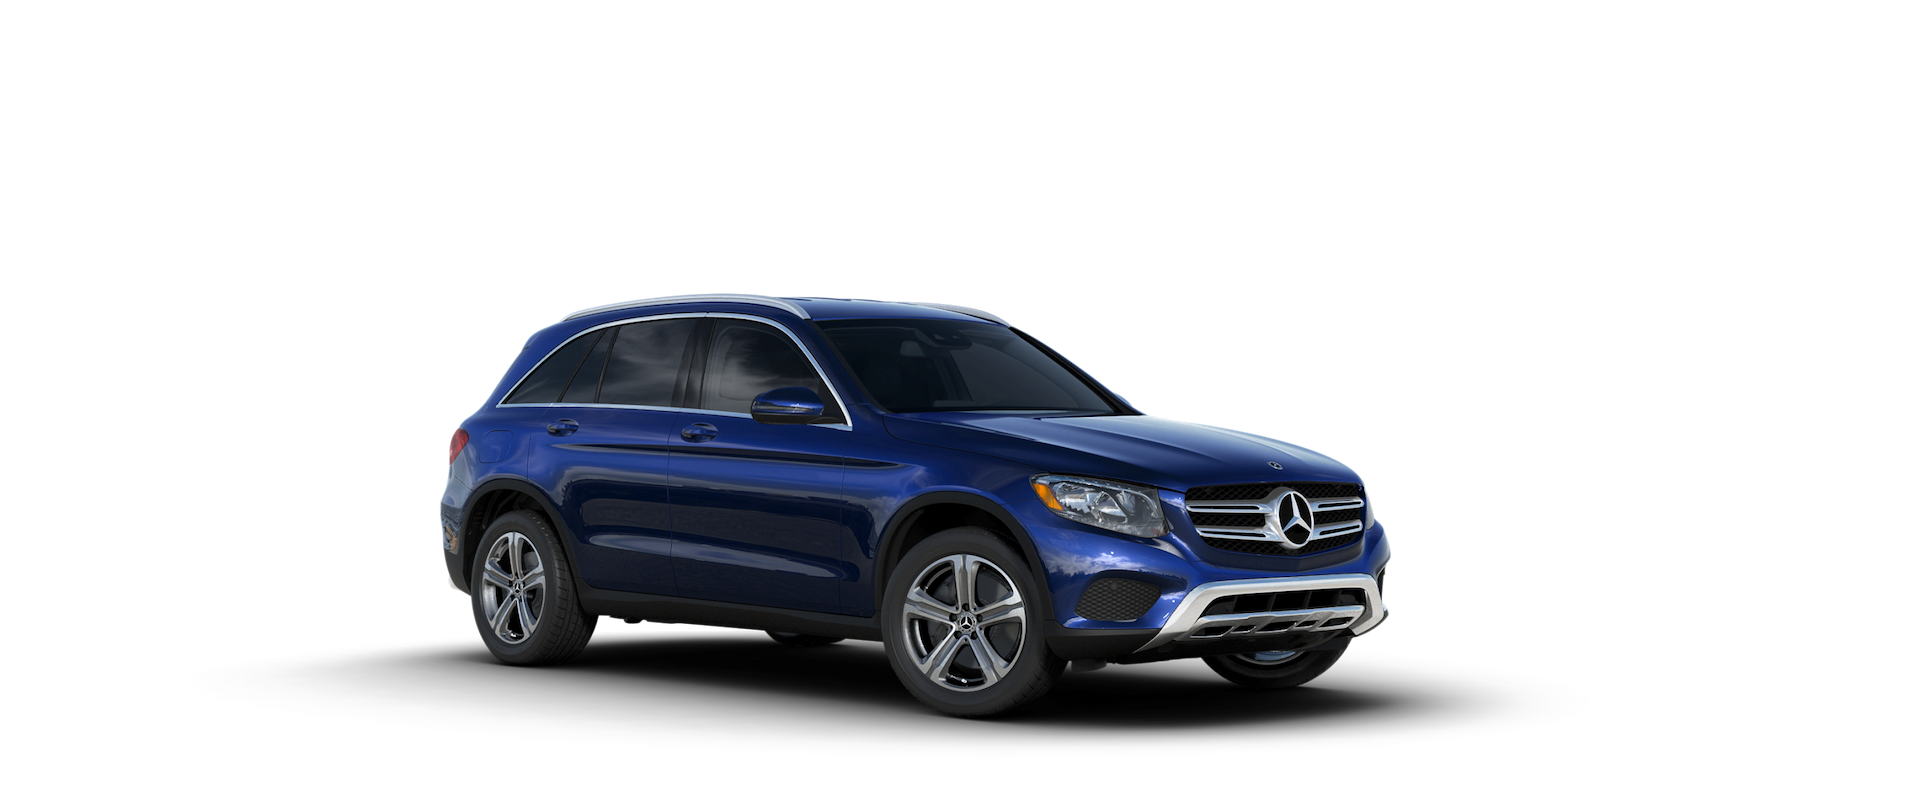 Mercedes-Benz GLC Service Intervals